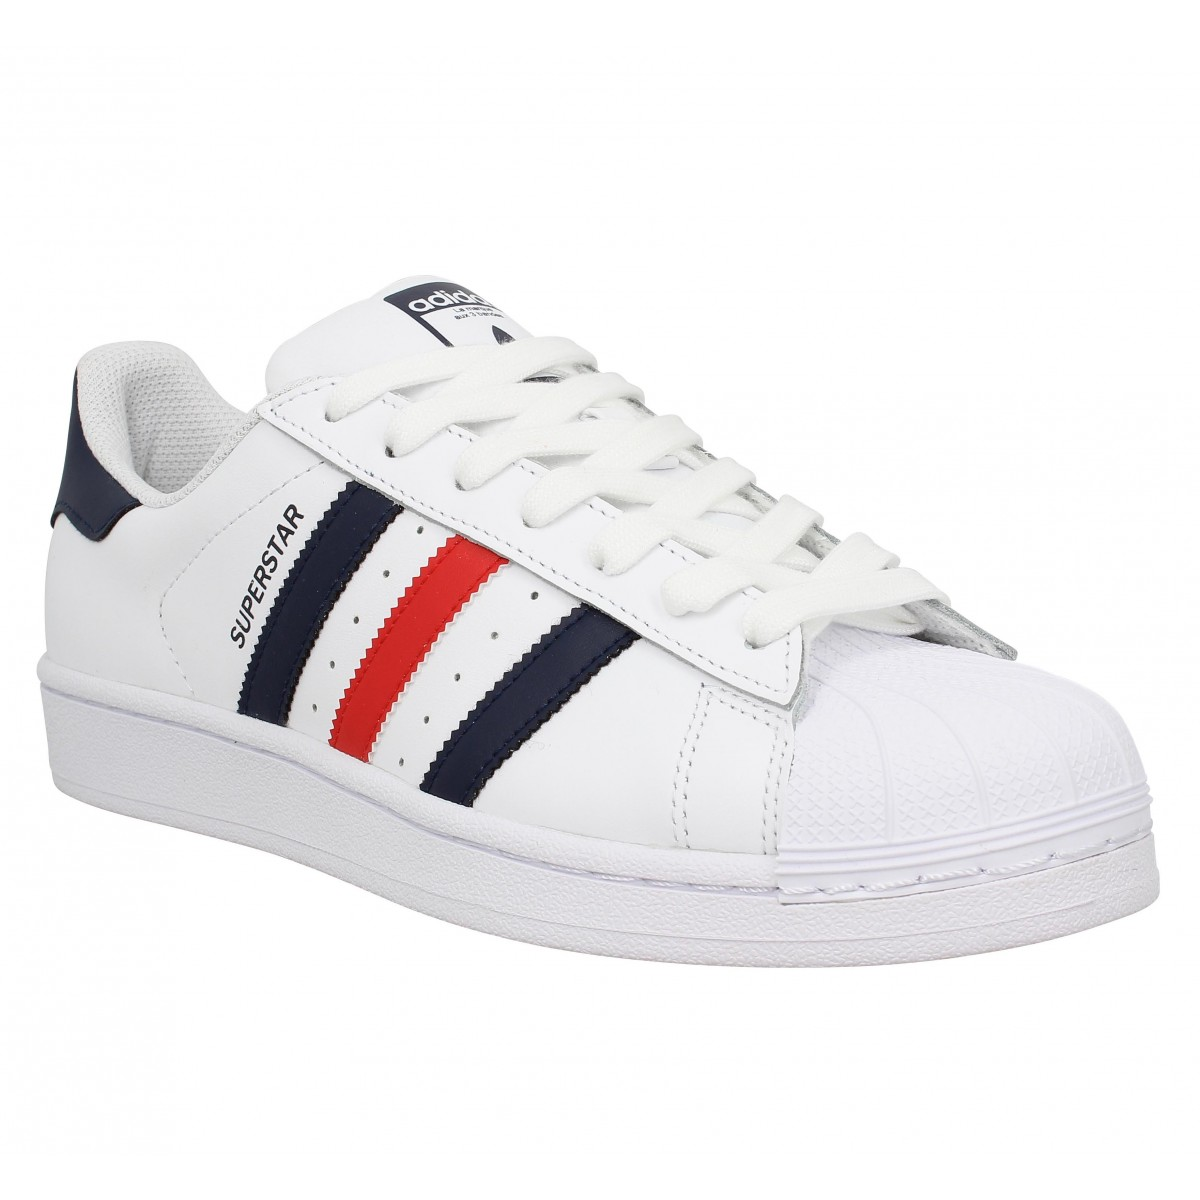 ADIDAS Superstar Foundation cuir Homme Blanc Bleu Rouge